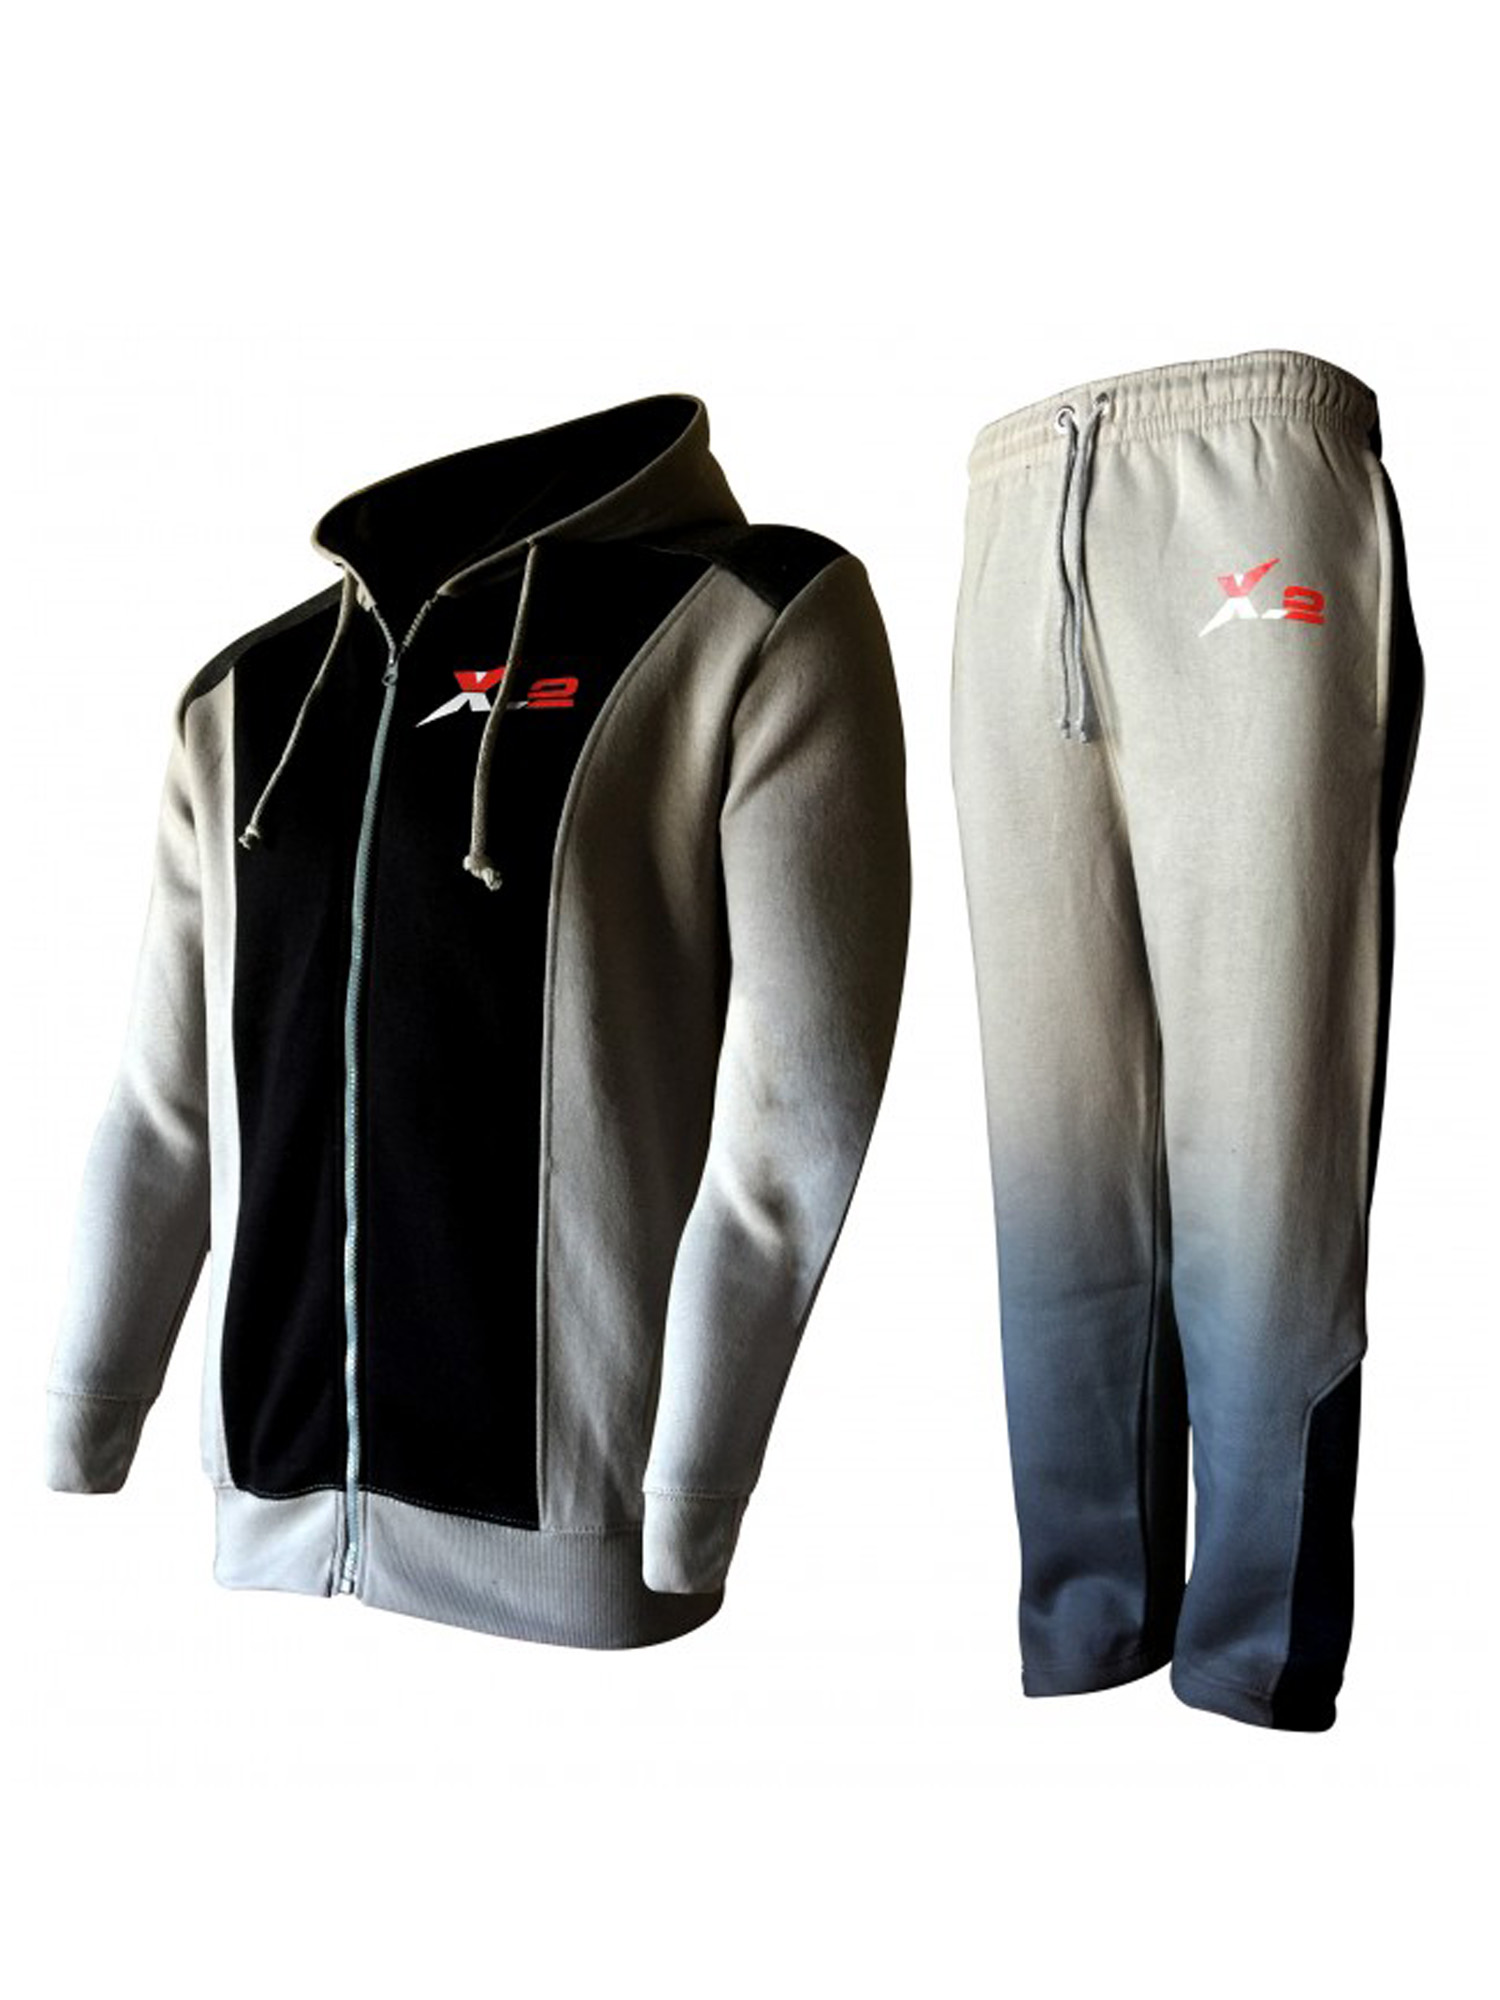 X-2 Full Zip Fleece Tracksuit Jogging Sweatsuit Activewear Hooded Black-Gray Large